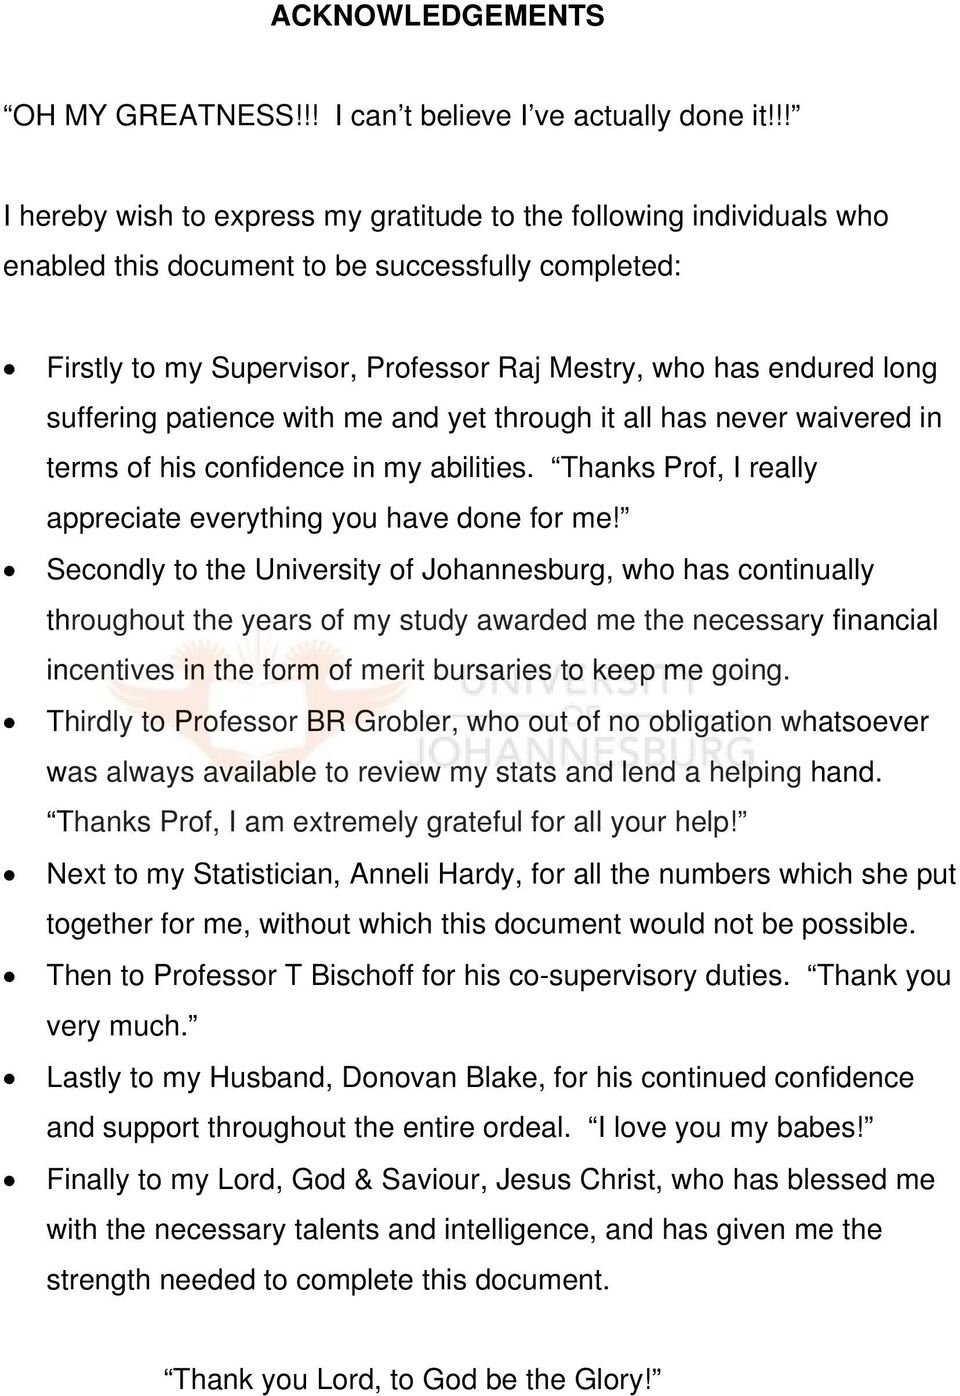 dedication the researcher wants to dedicate this study first to